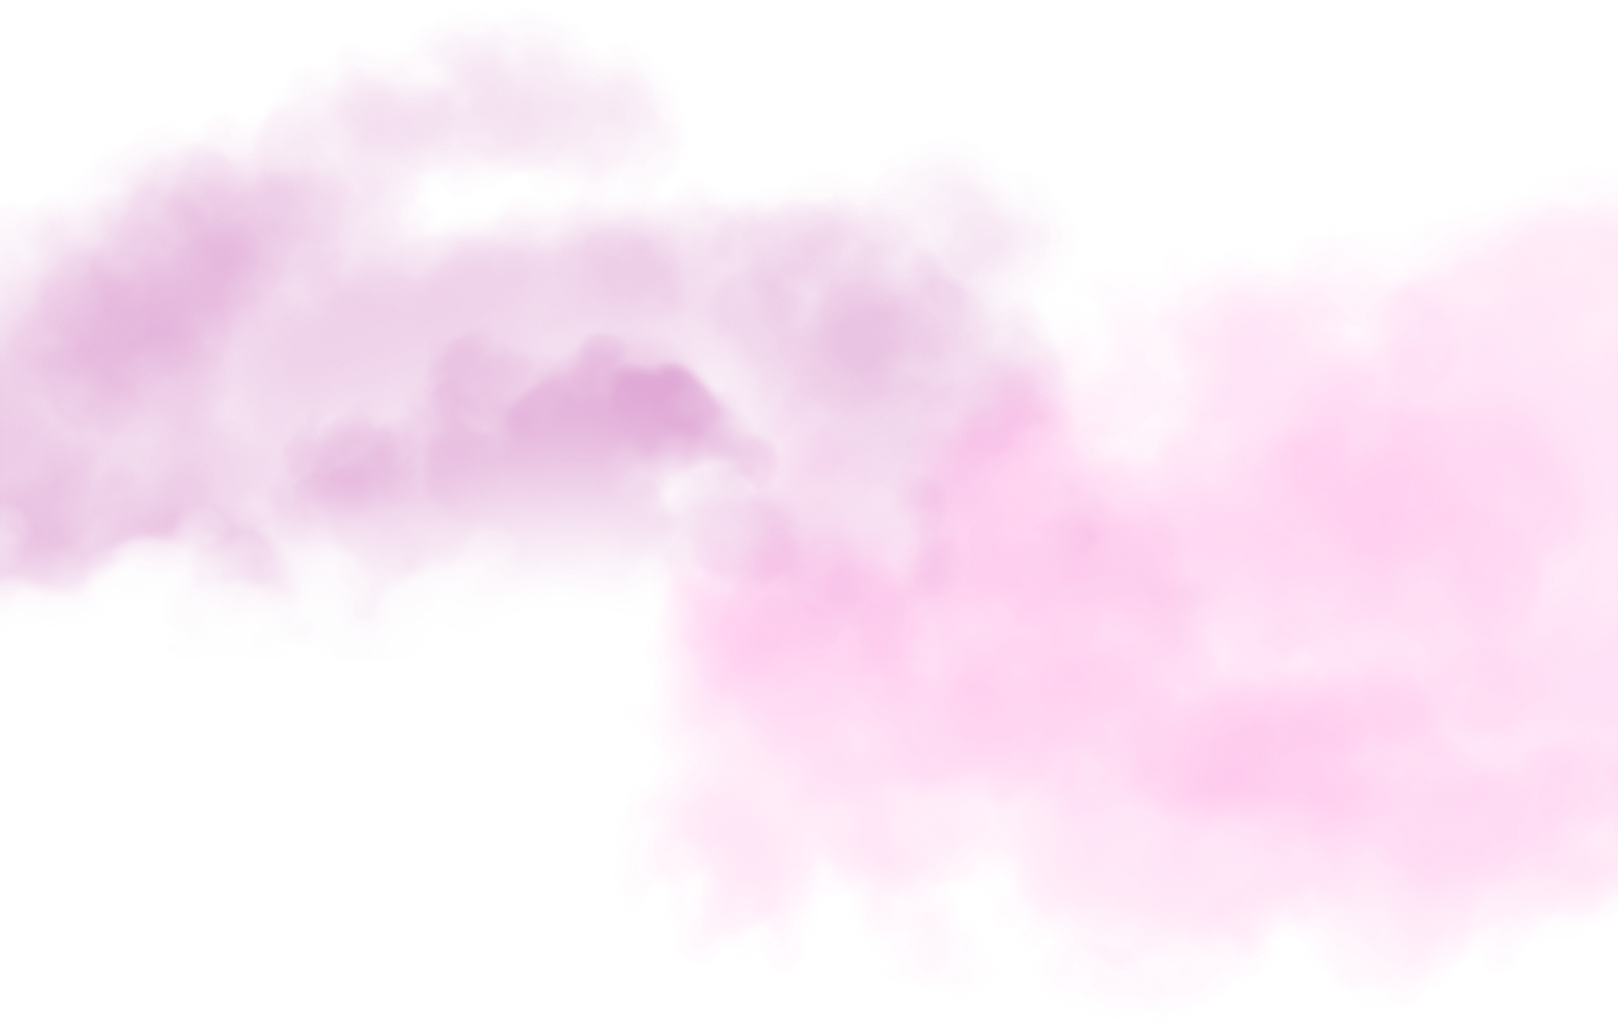 Pink clouds png. Cloud kawaii tumblr ftestickers